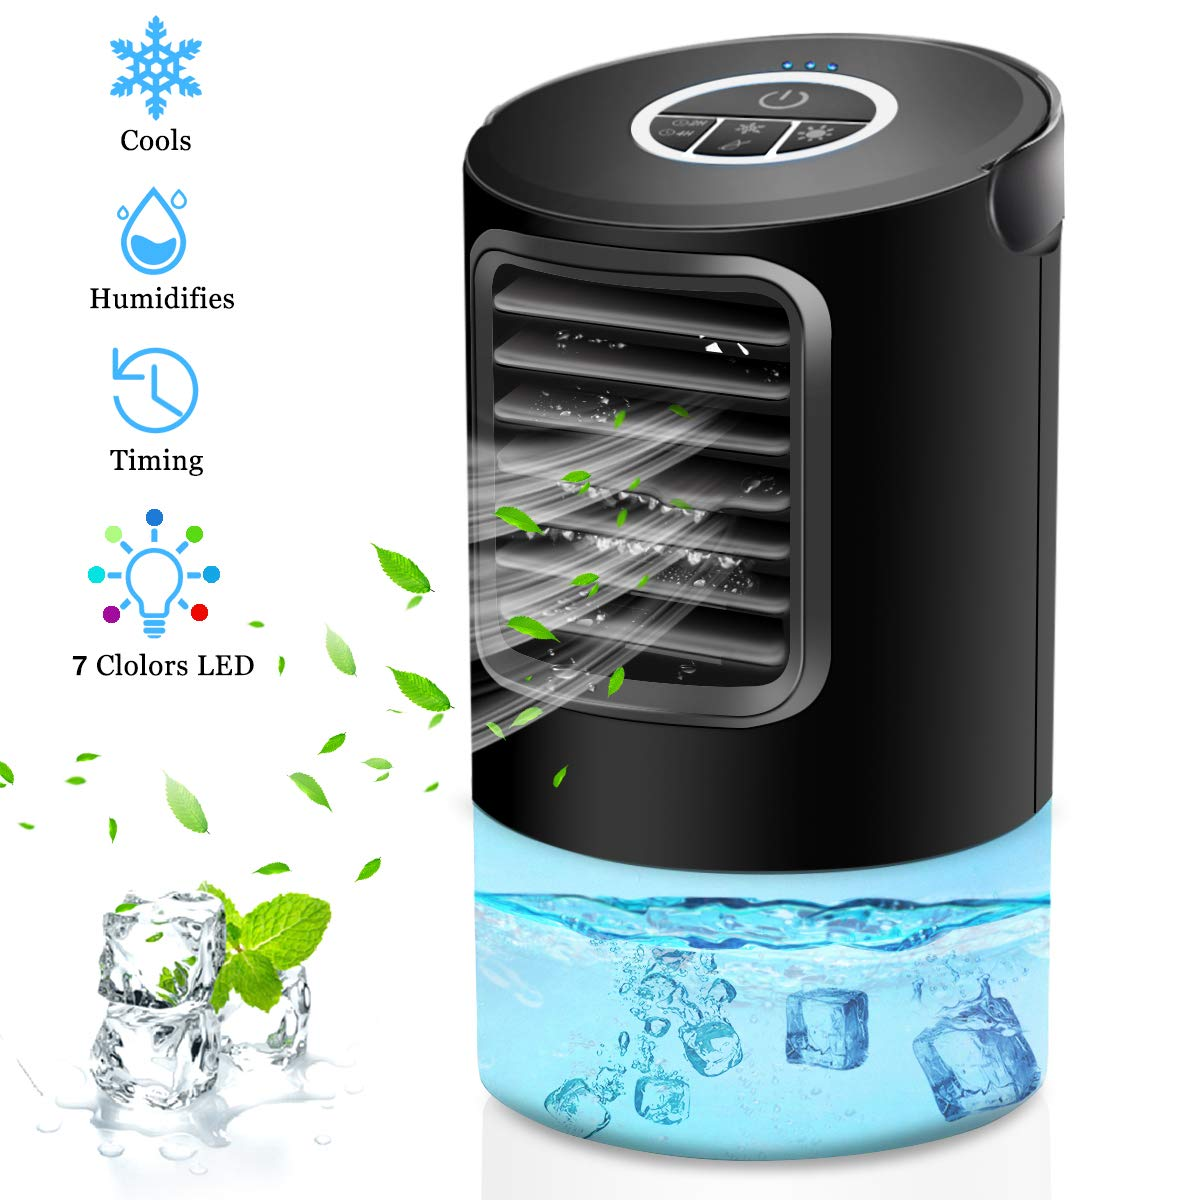 OVPPH Portable Air Conditioner Fan